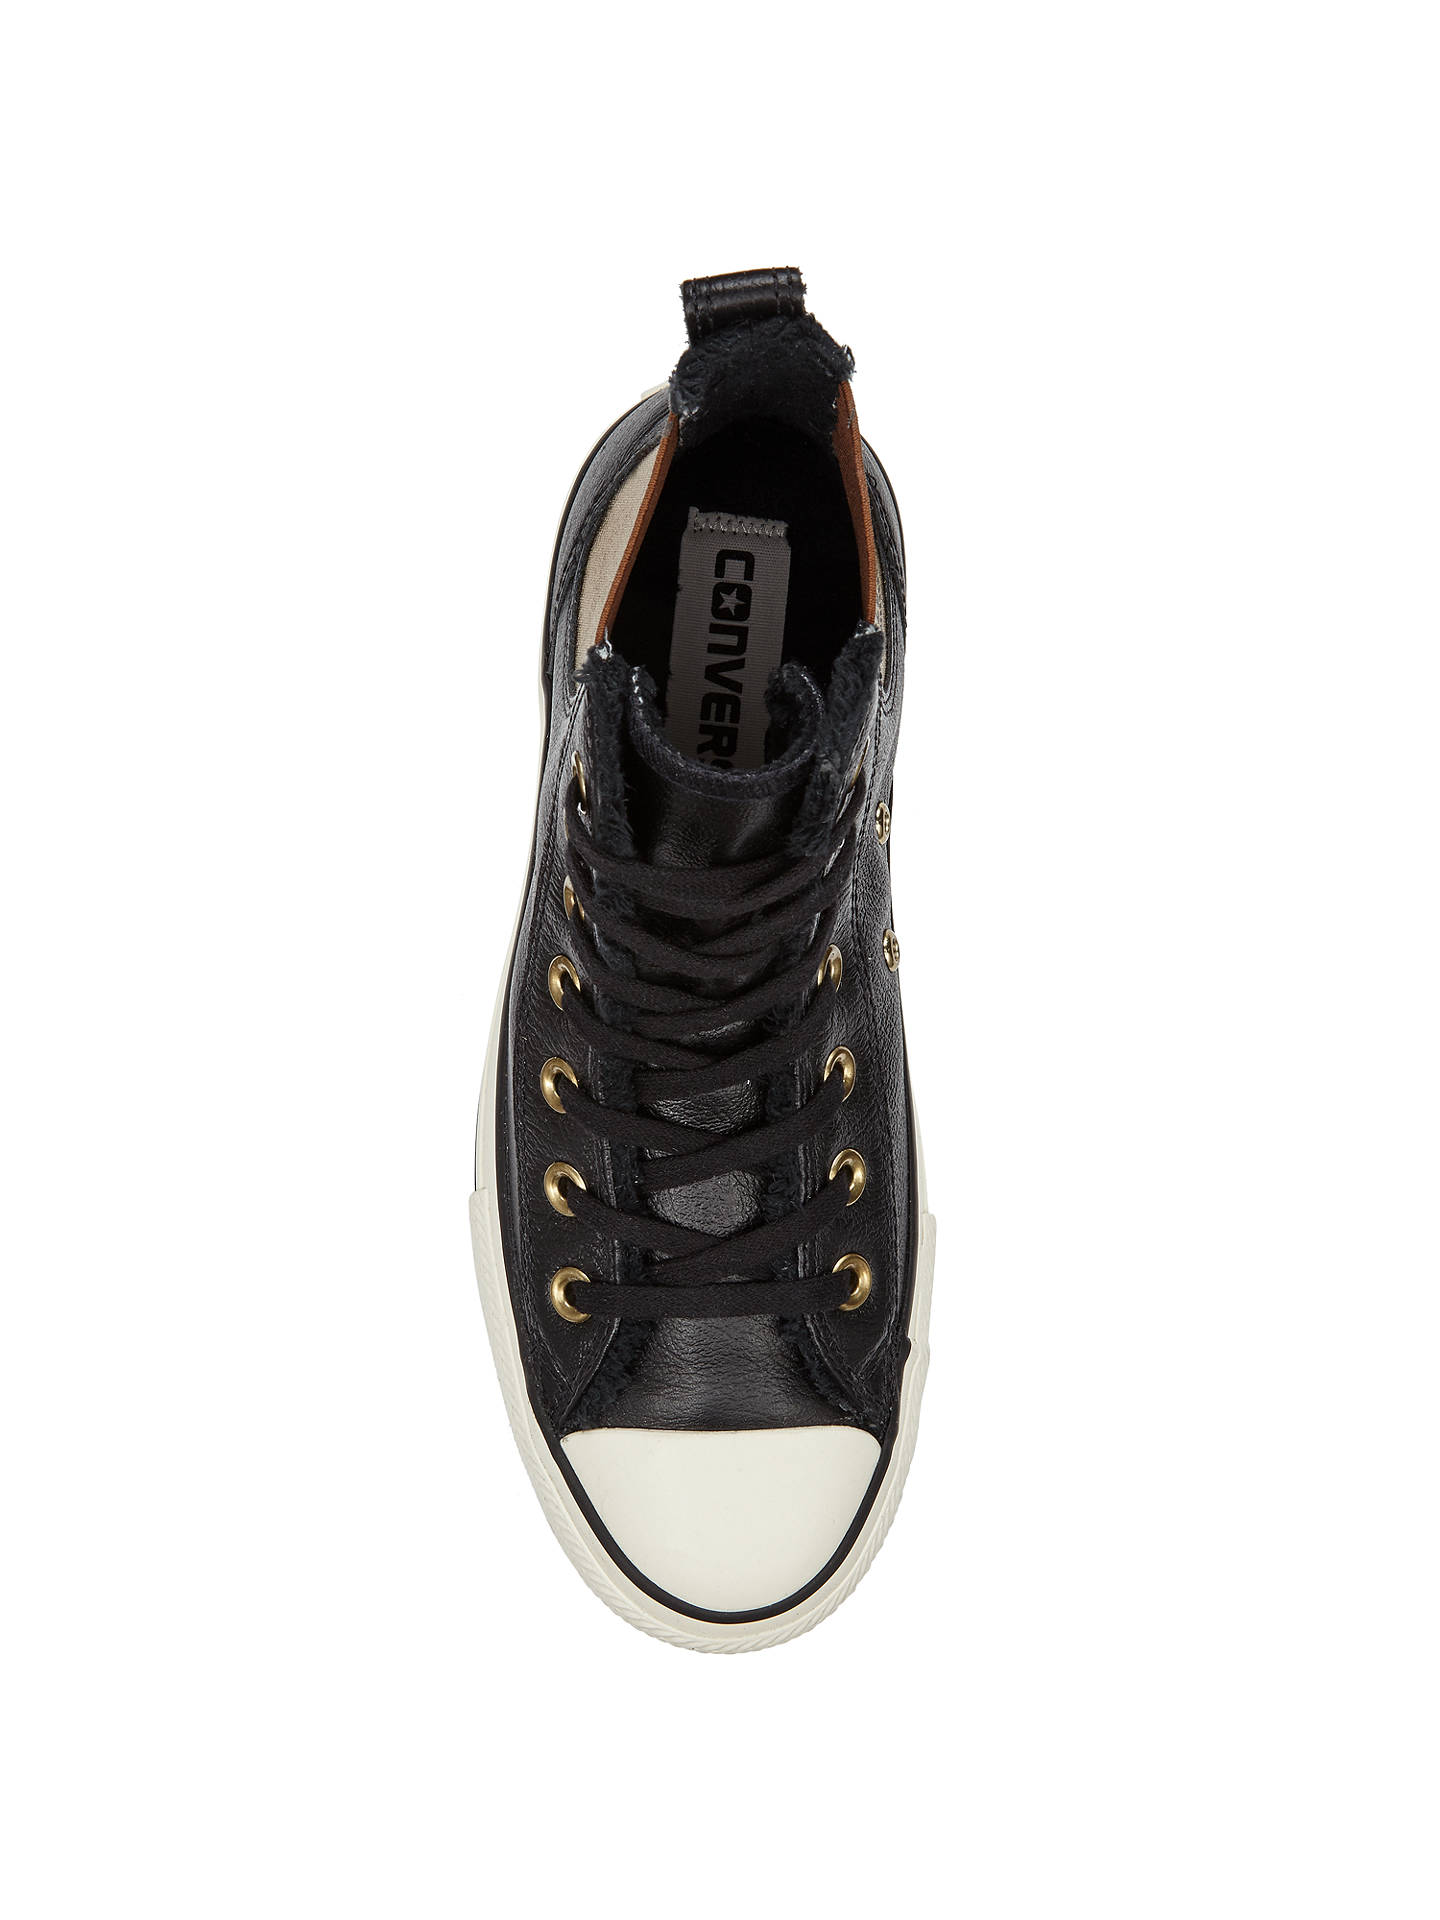 converse all star chelsea